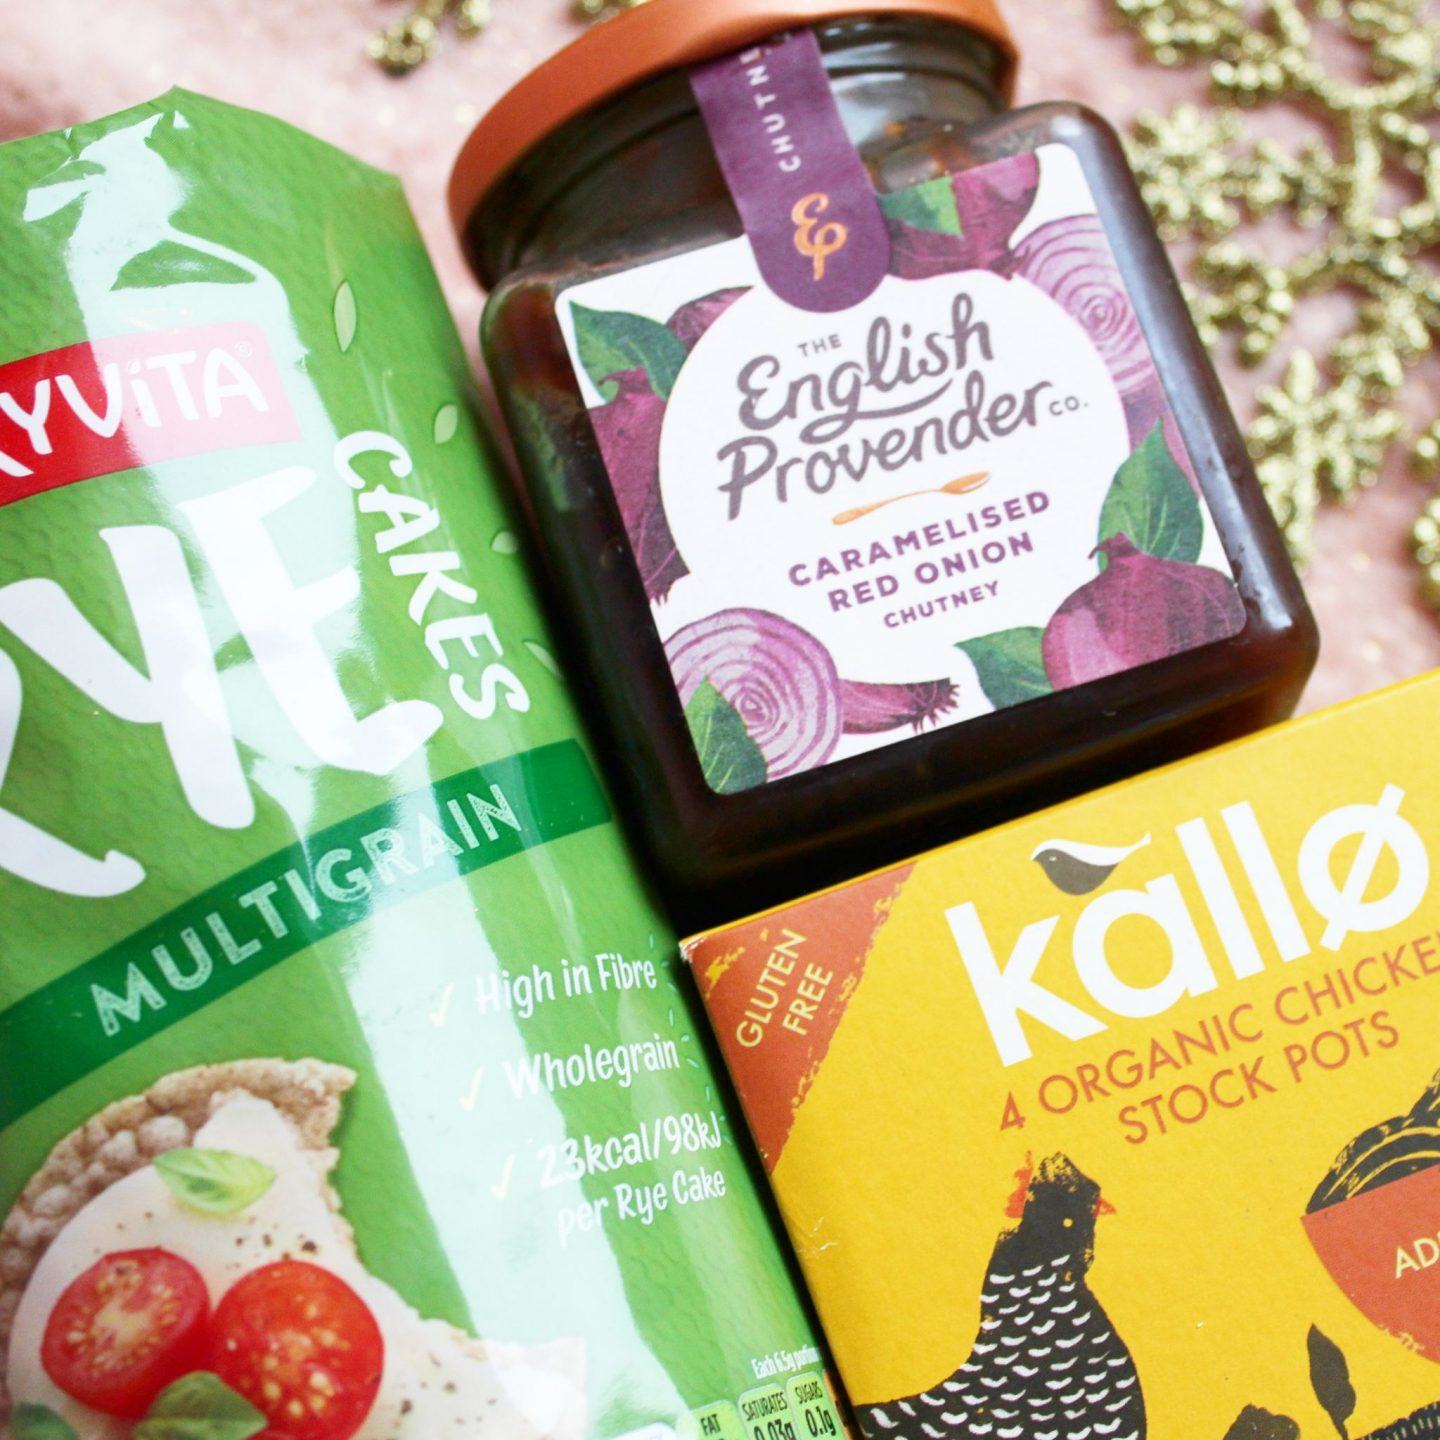 Degustabox | The English Provender Caramelised Red Onion Chutney